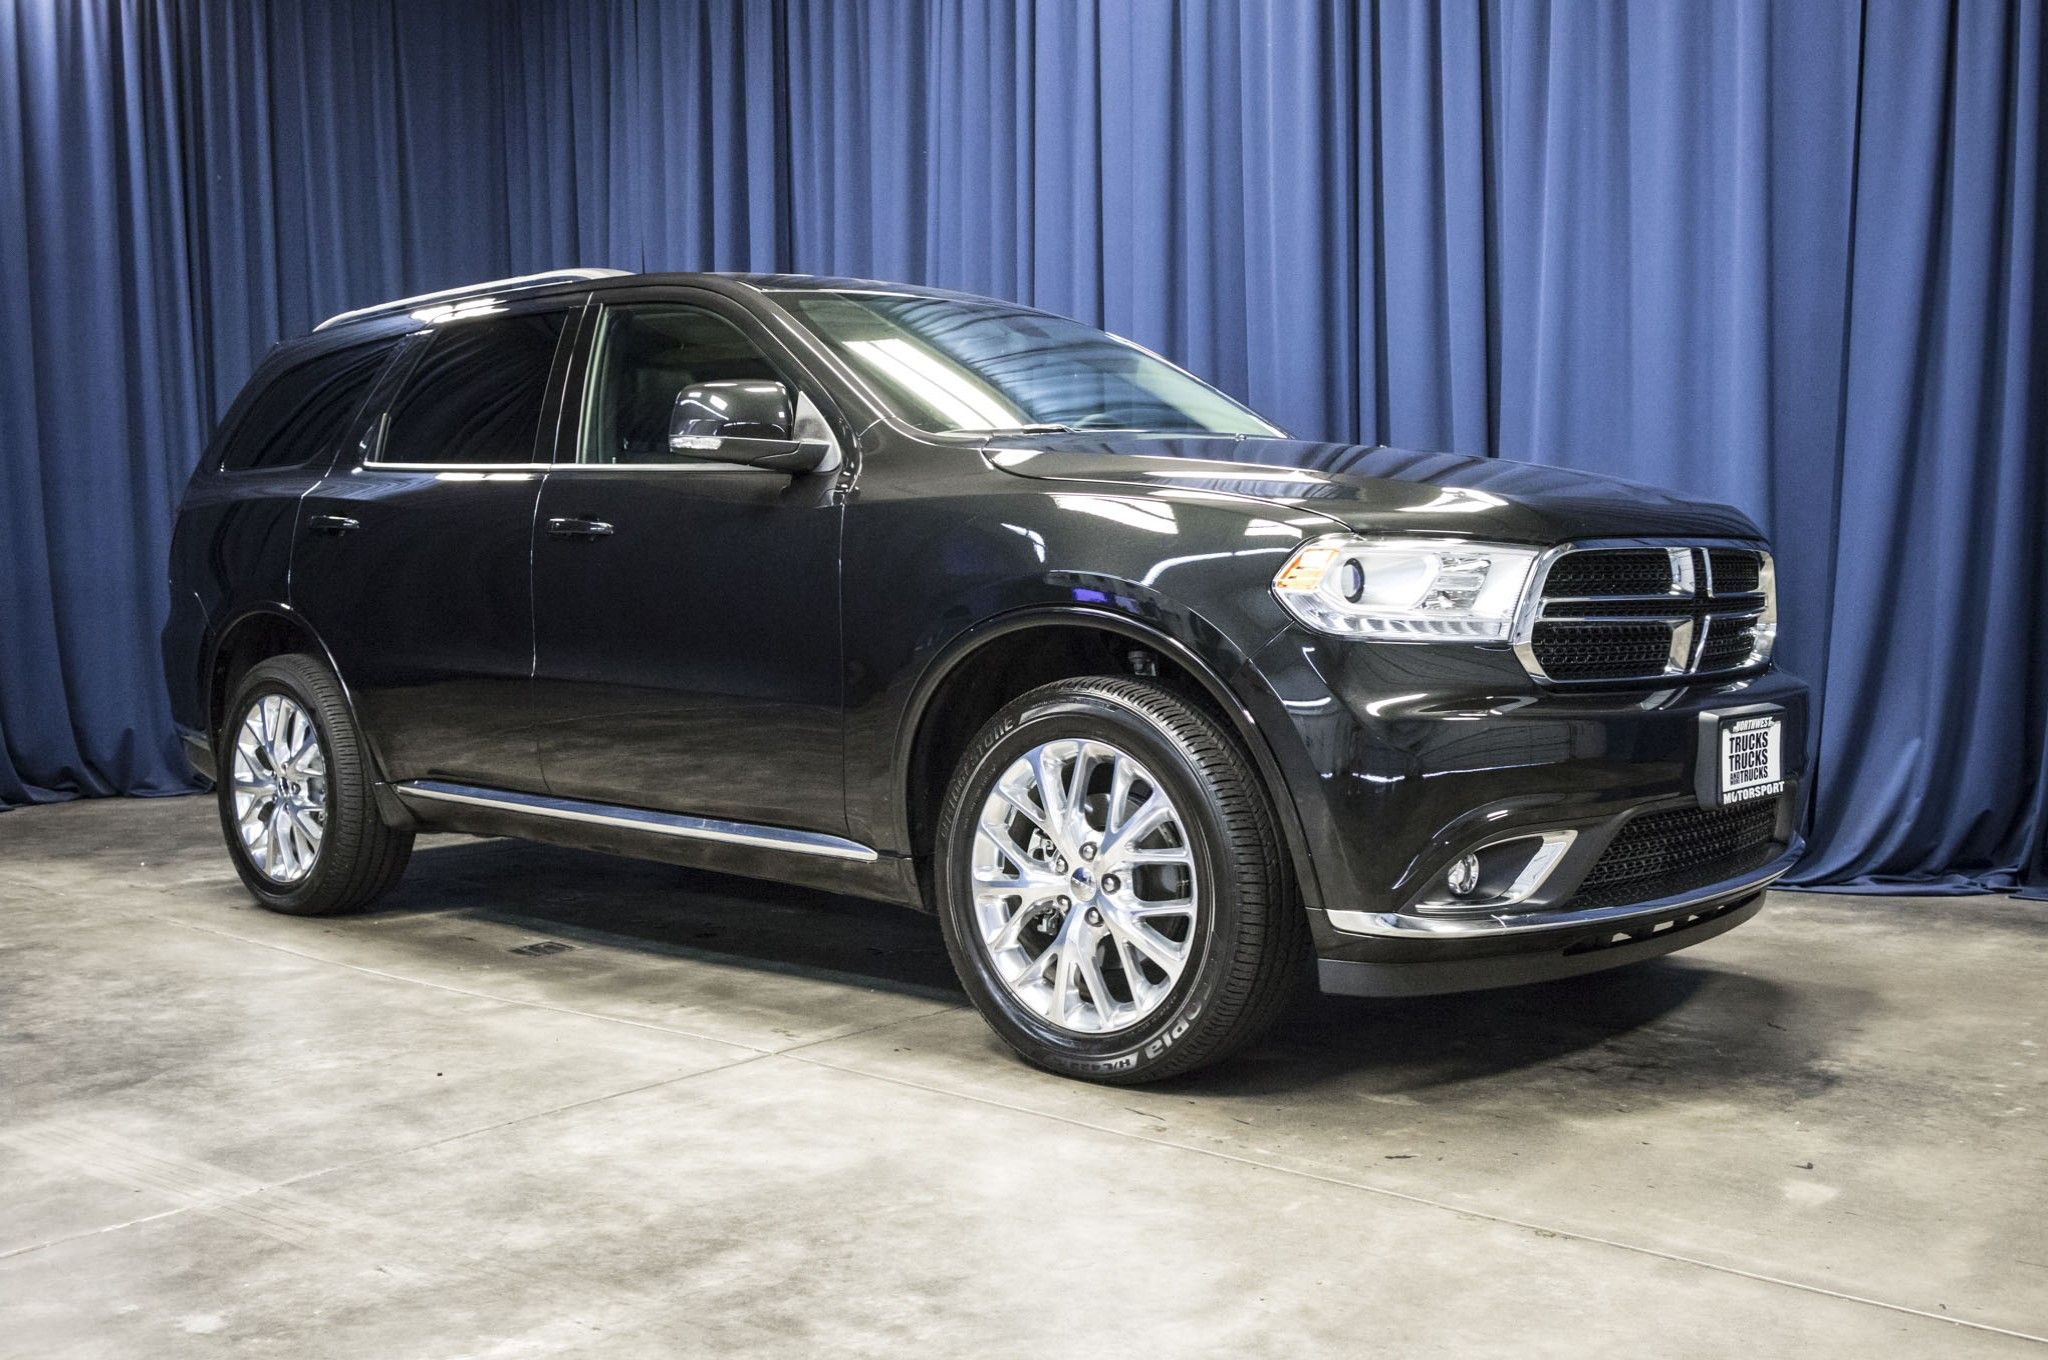 The 25 best 2016 dodge durango limited ideas on pinterest 2014 dodge durango 2017 dodge durango and 2016 dodge durango rt